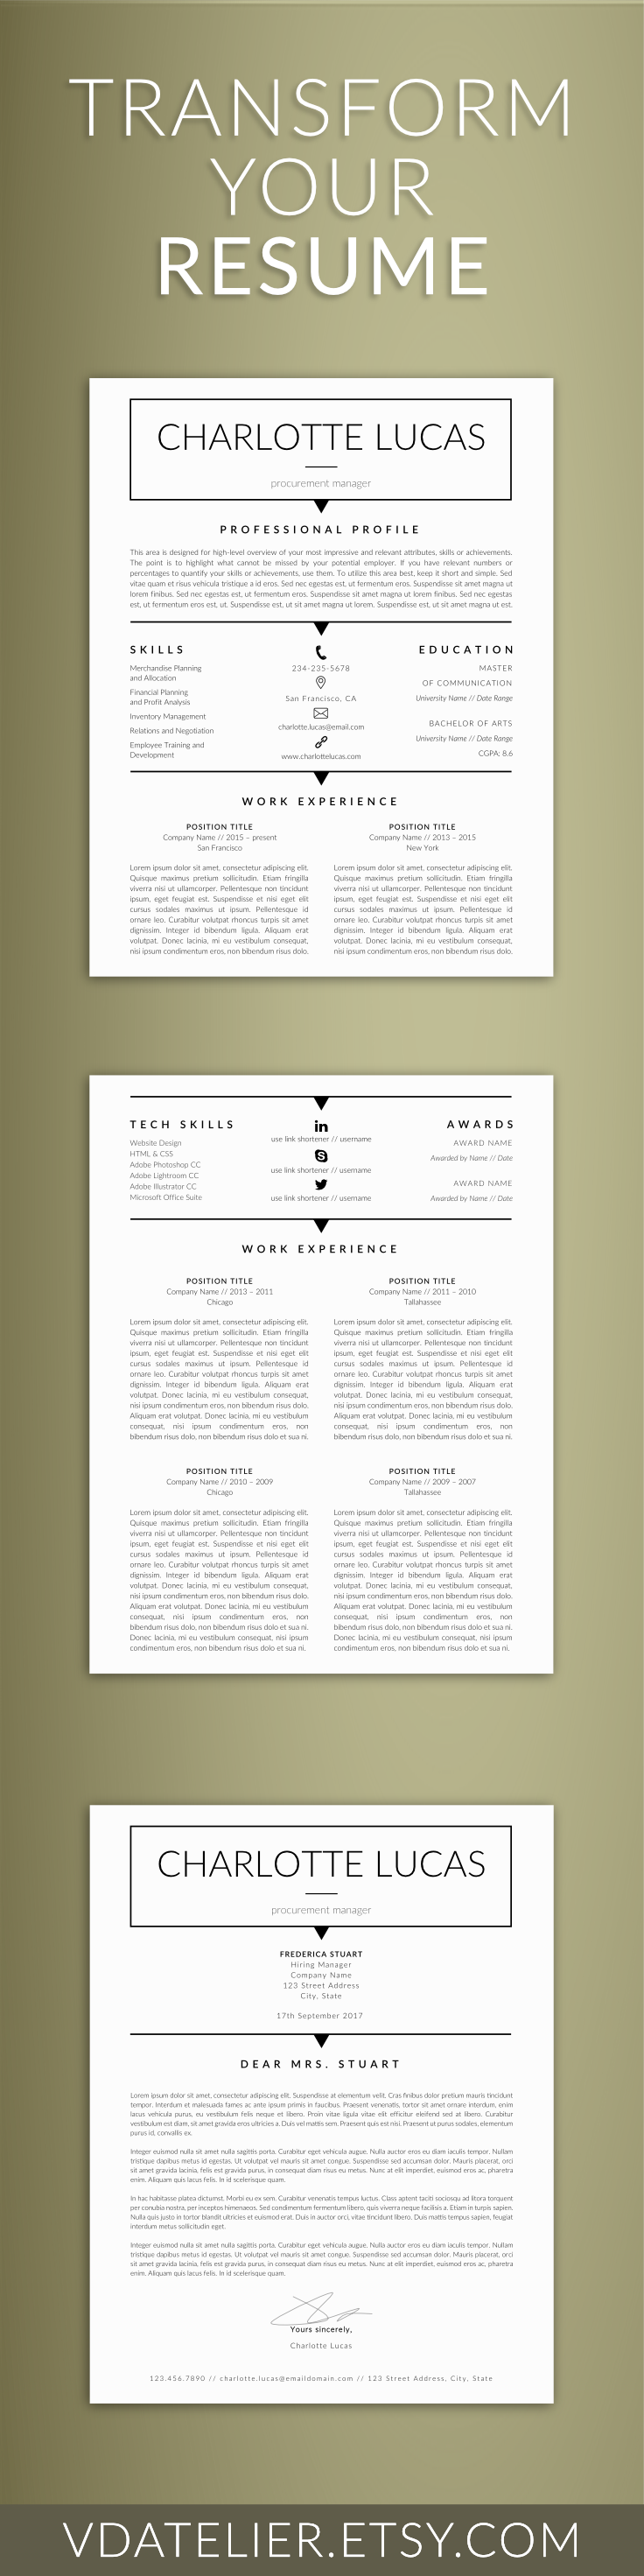 Minimalist Resume Template Minimalist Resume For Ms Word  Cv Clean Printable Resume  Cv .